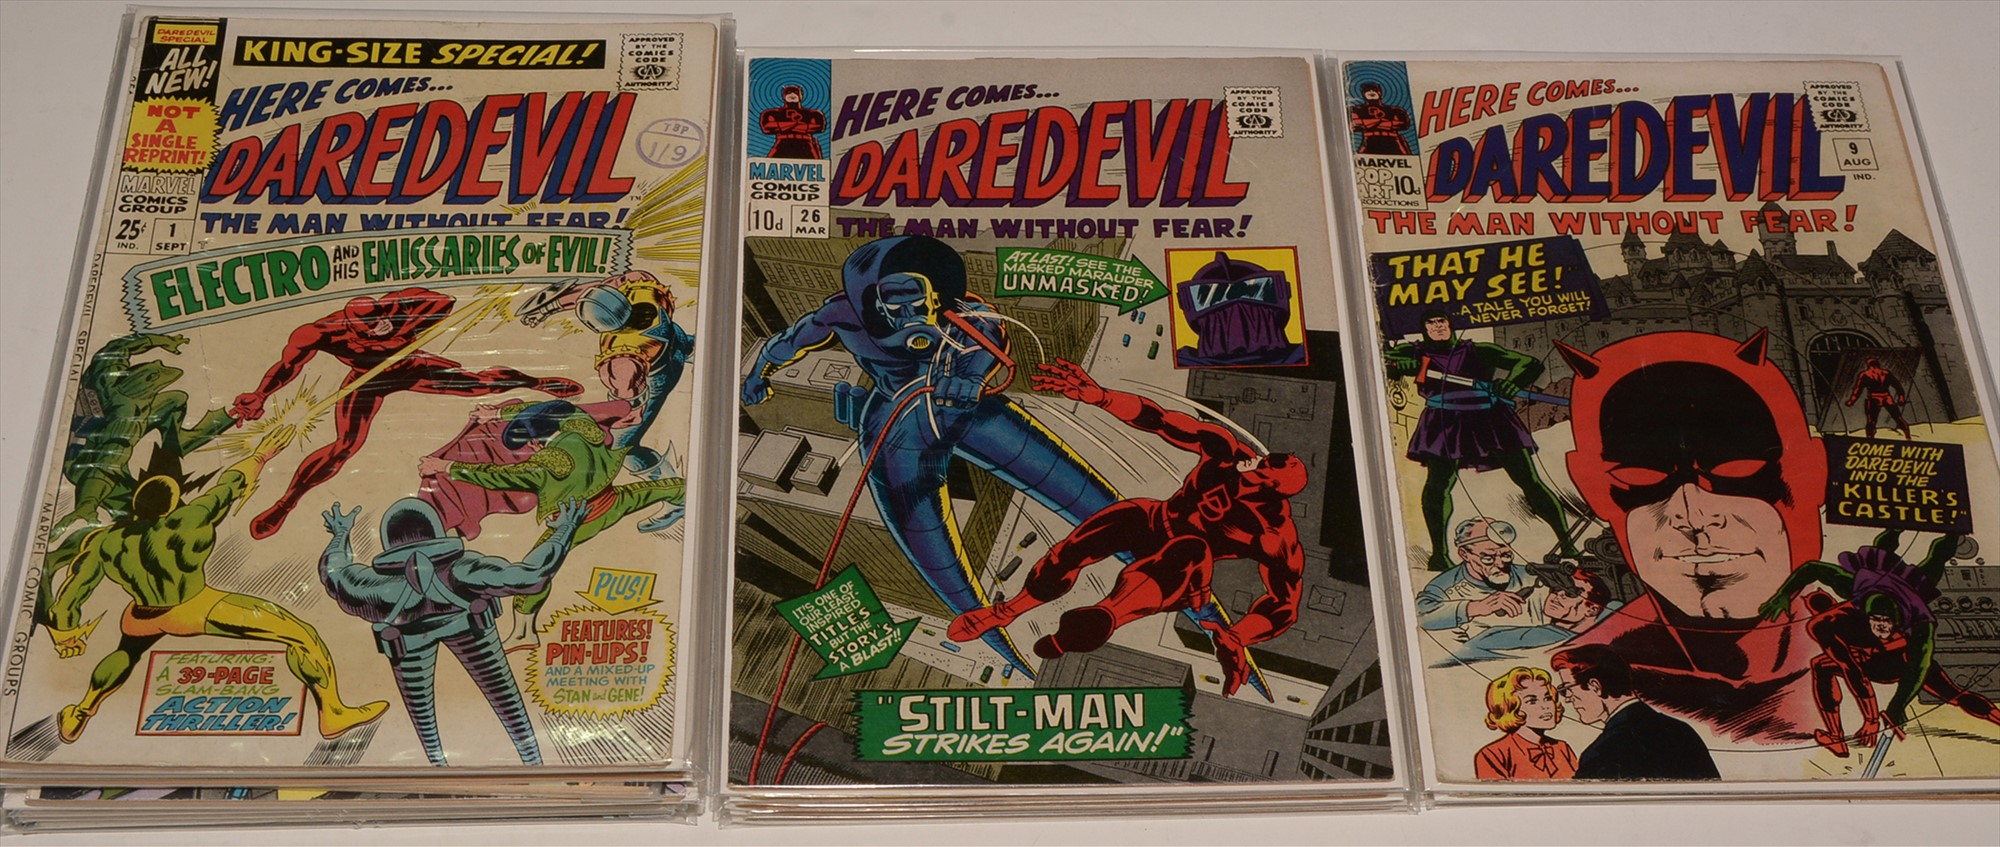 Daredevil No's. 9, 10 11 & 26-30 inclusive / Daredevil King-Size and Giant-Size Comics; and 64-Page